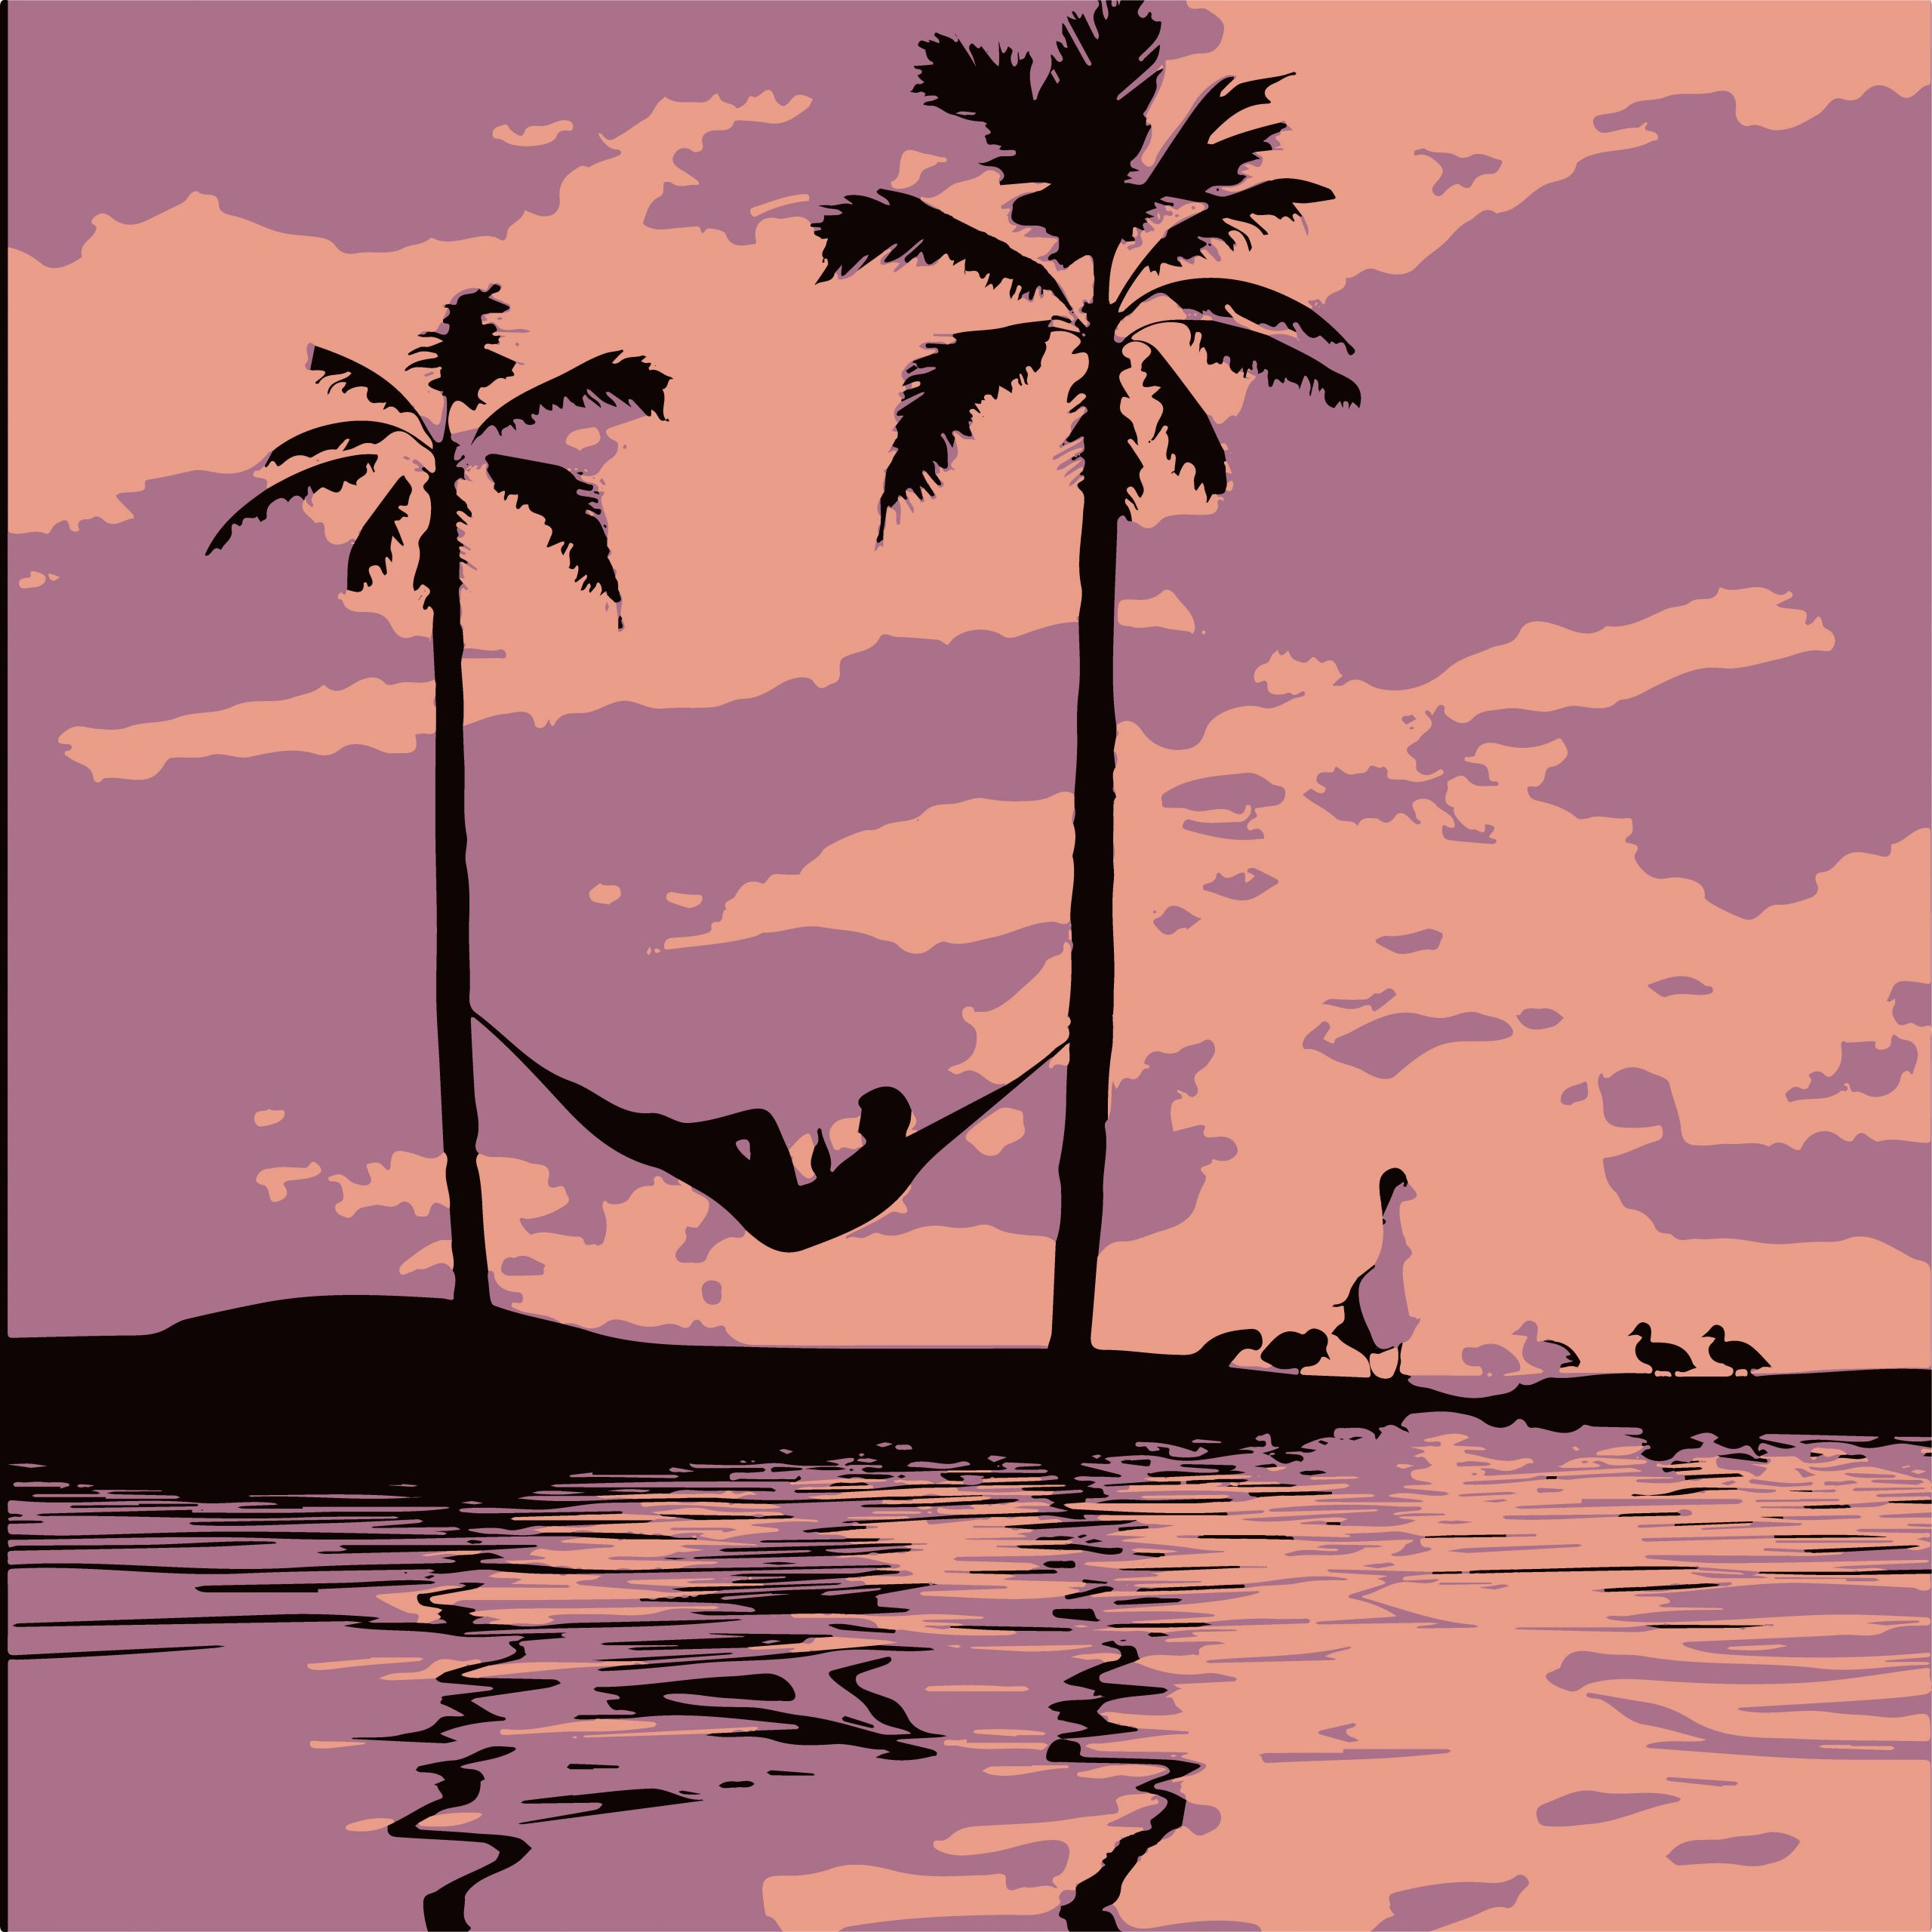 ILLUSTRATION of a Beach